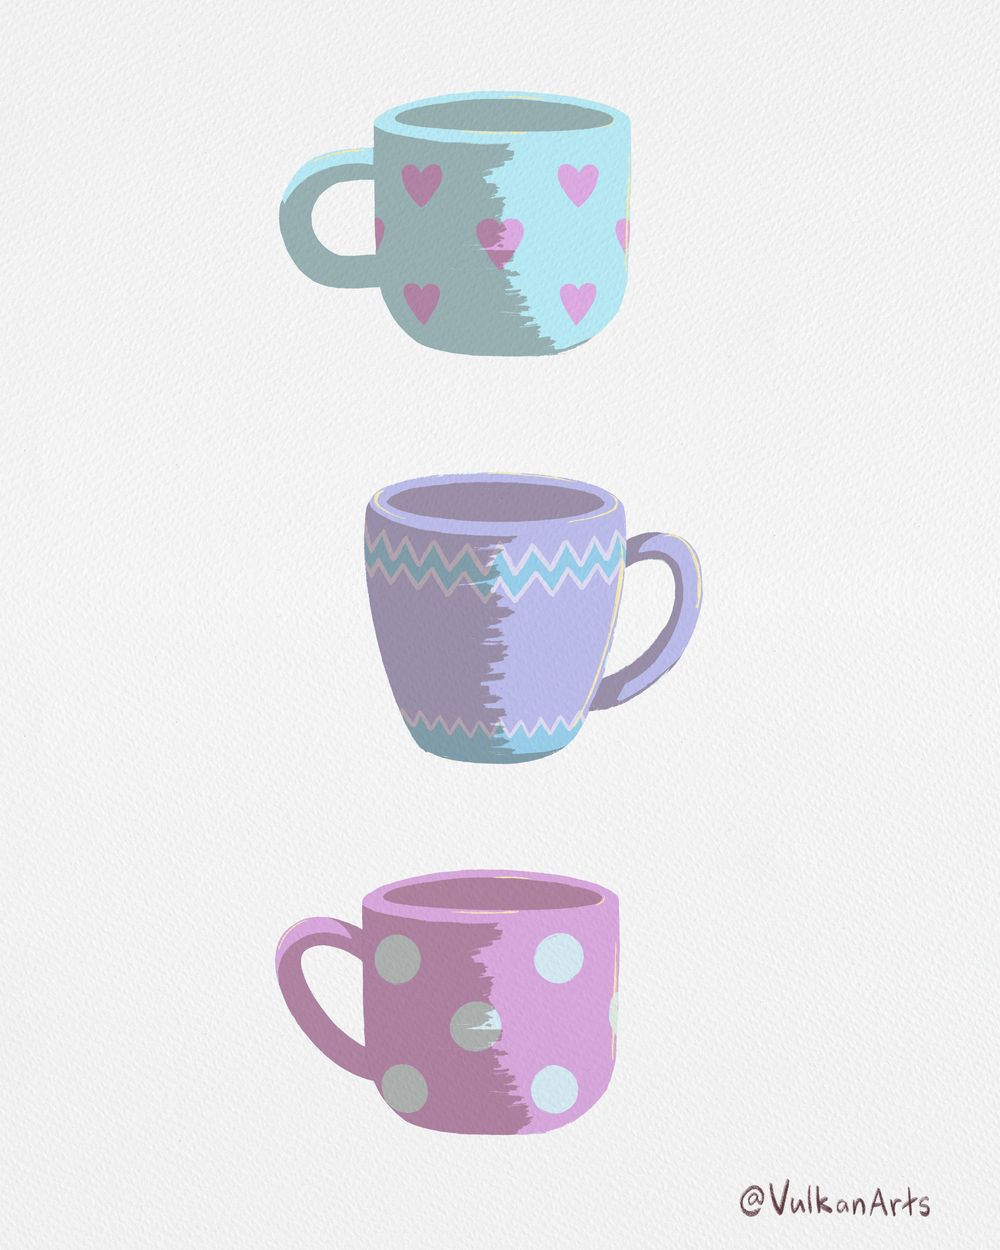 Bugs and mugs - image 5 - student project